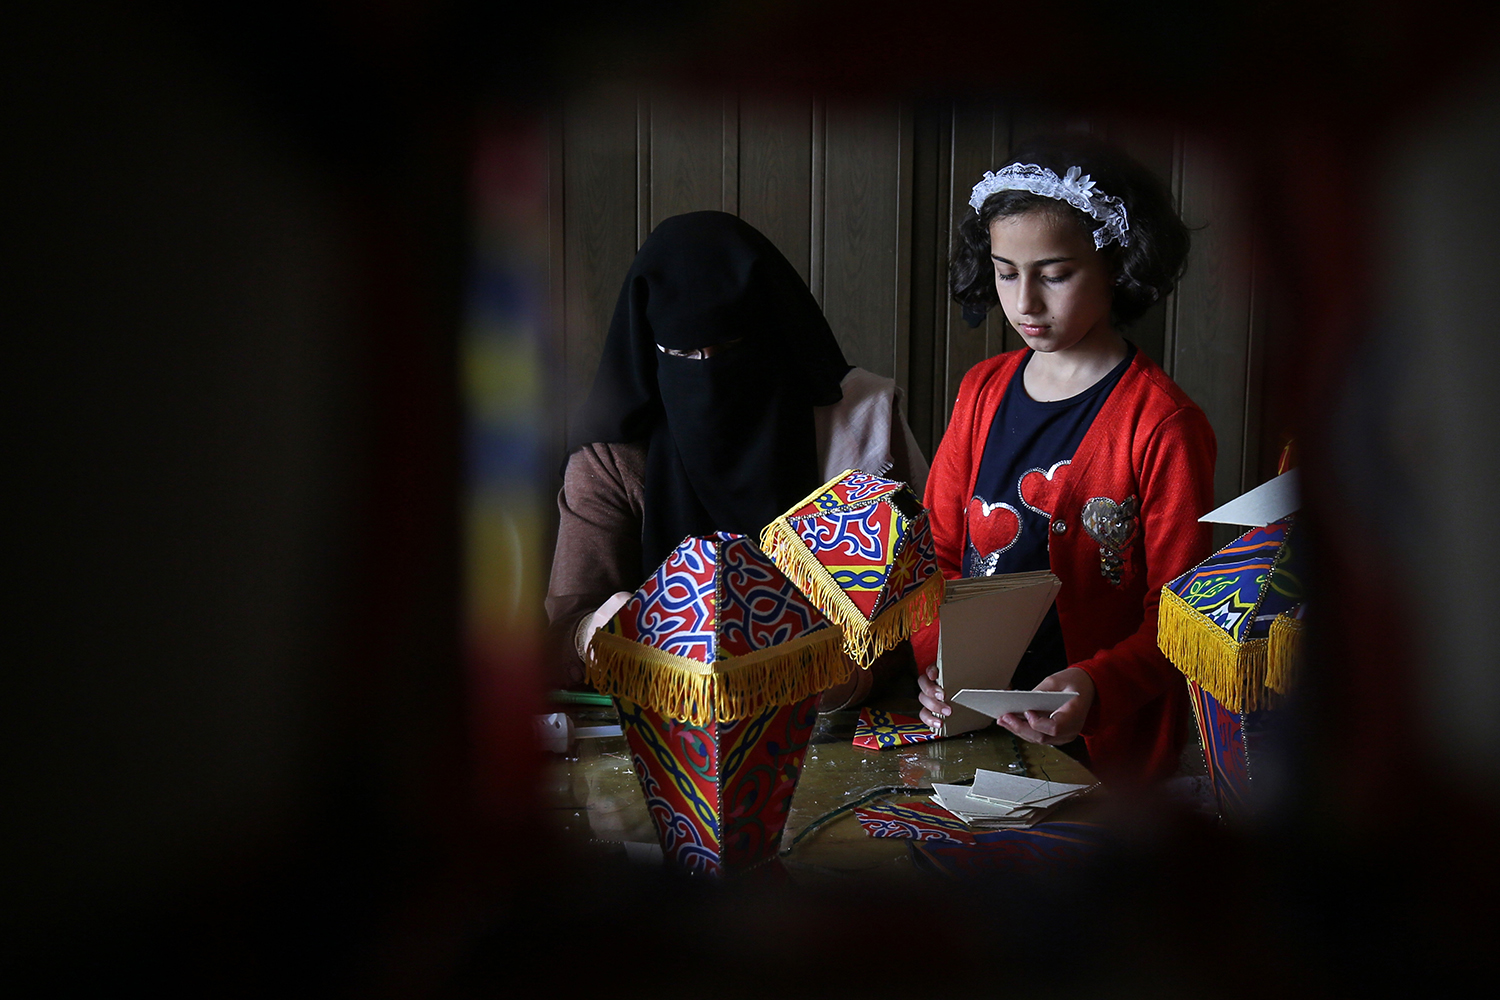 Members of the Palestinian al-Yaqoubi family gather around a table to make lanterns in Khan Yunis, a city in the southern Gaza Strip, on April 15. The family plans to sell the lanterns ahead of the Muslim holy month of Ramadan. SAID KHATIB/AFP via Getty Images